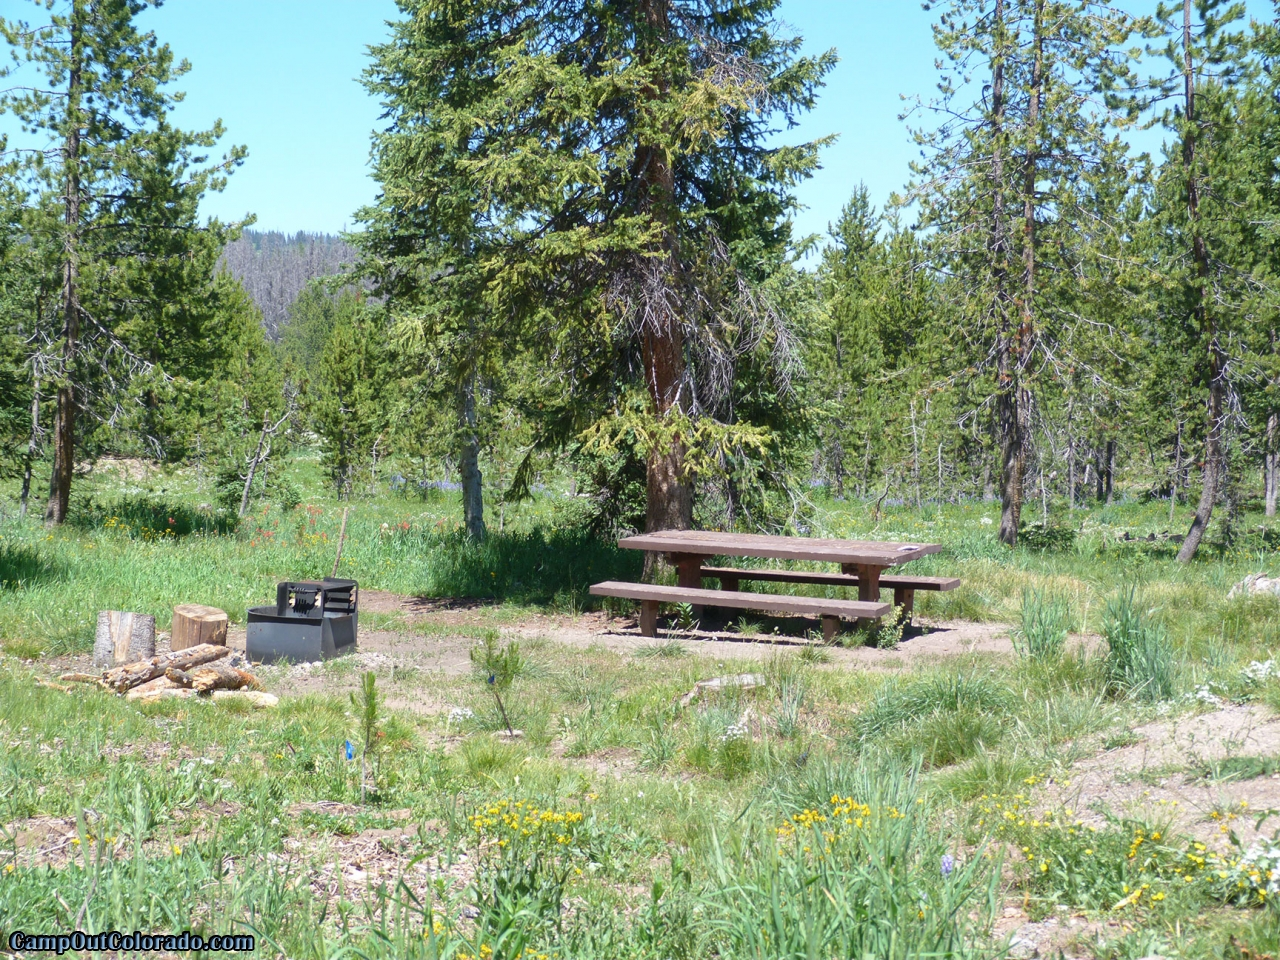 campoutcolorado-meadows-campground-rabbit-ears-camping-area